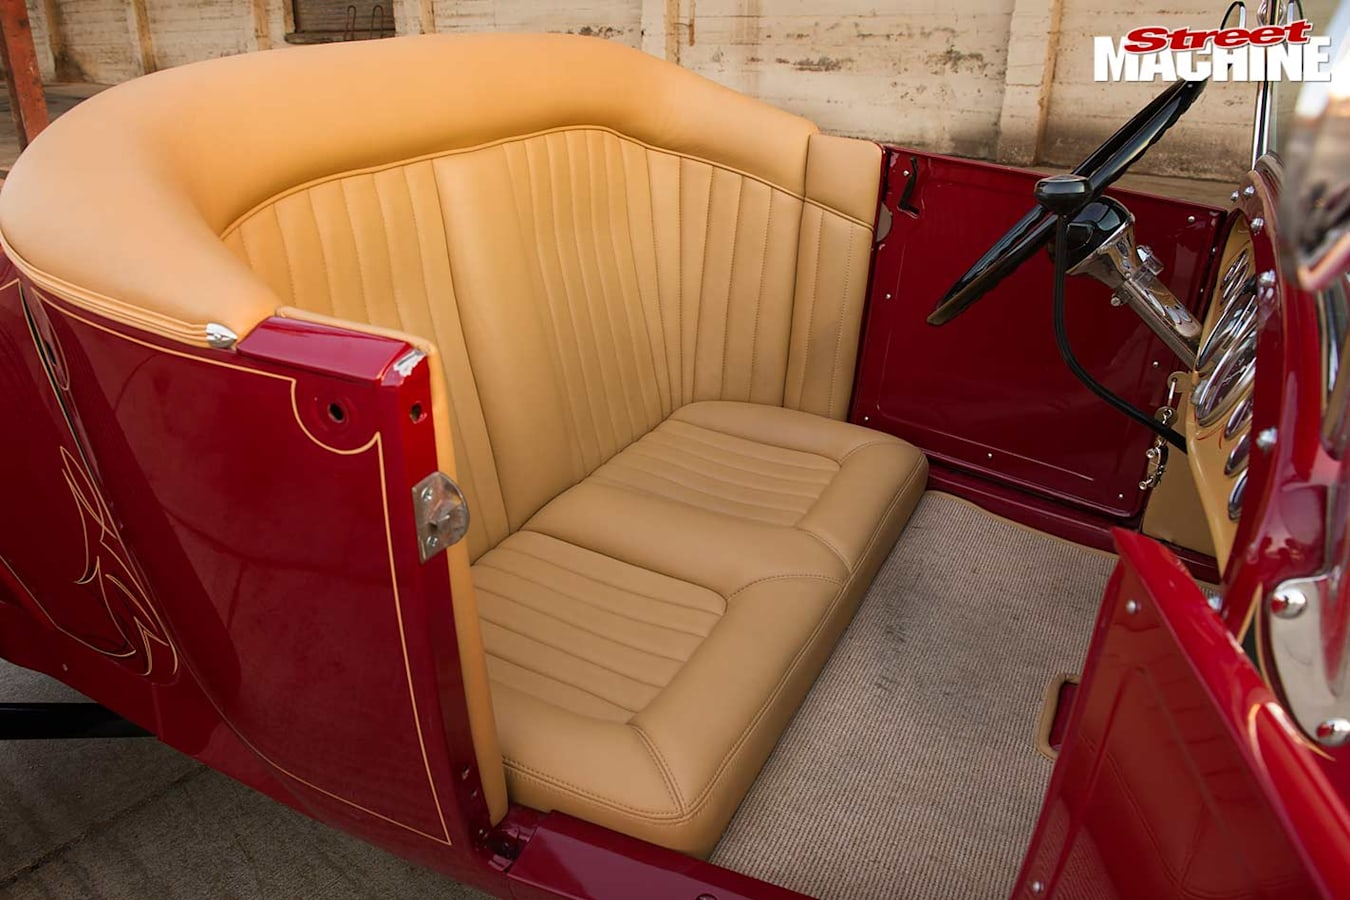 Ford Model T seats